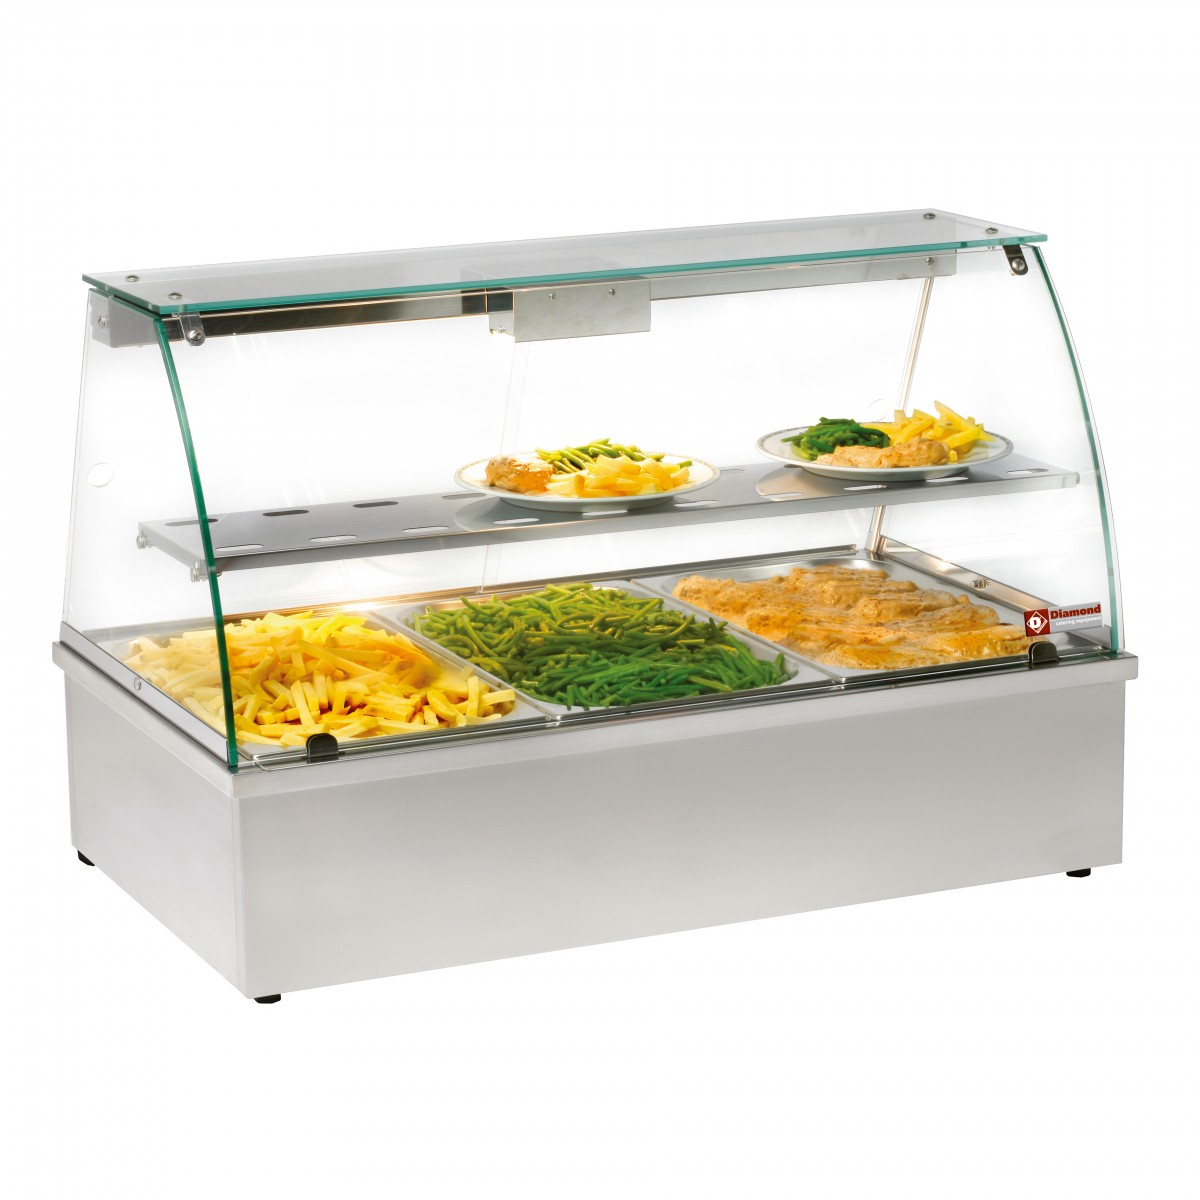 of countertops display shops for food countertop alpina warmer delice us case